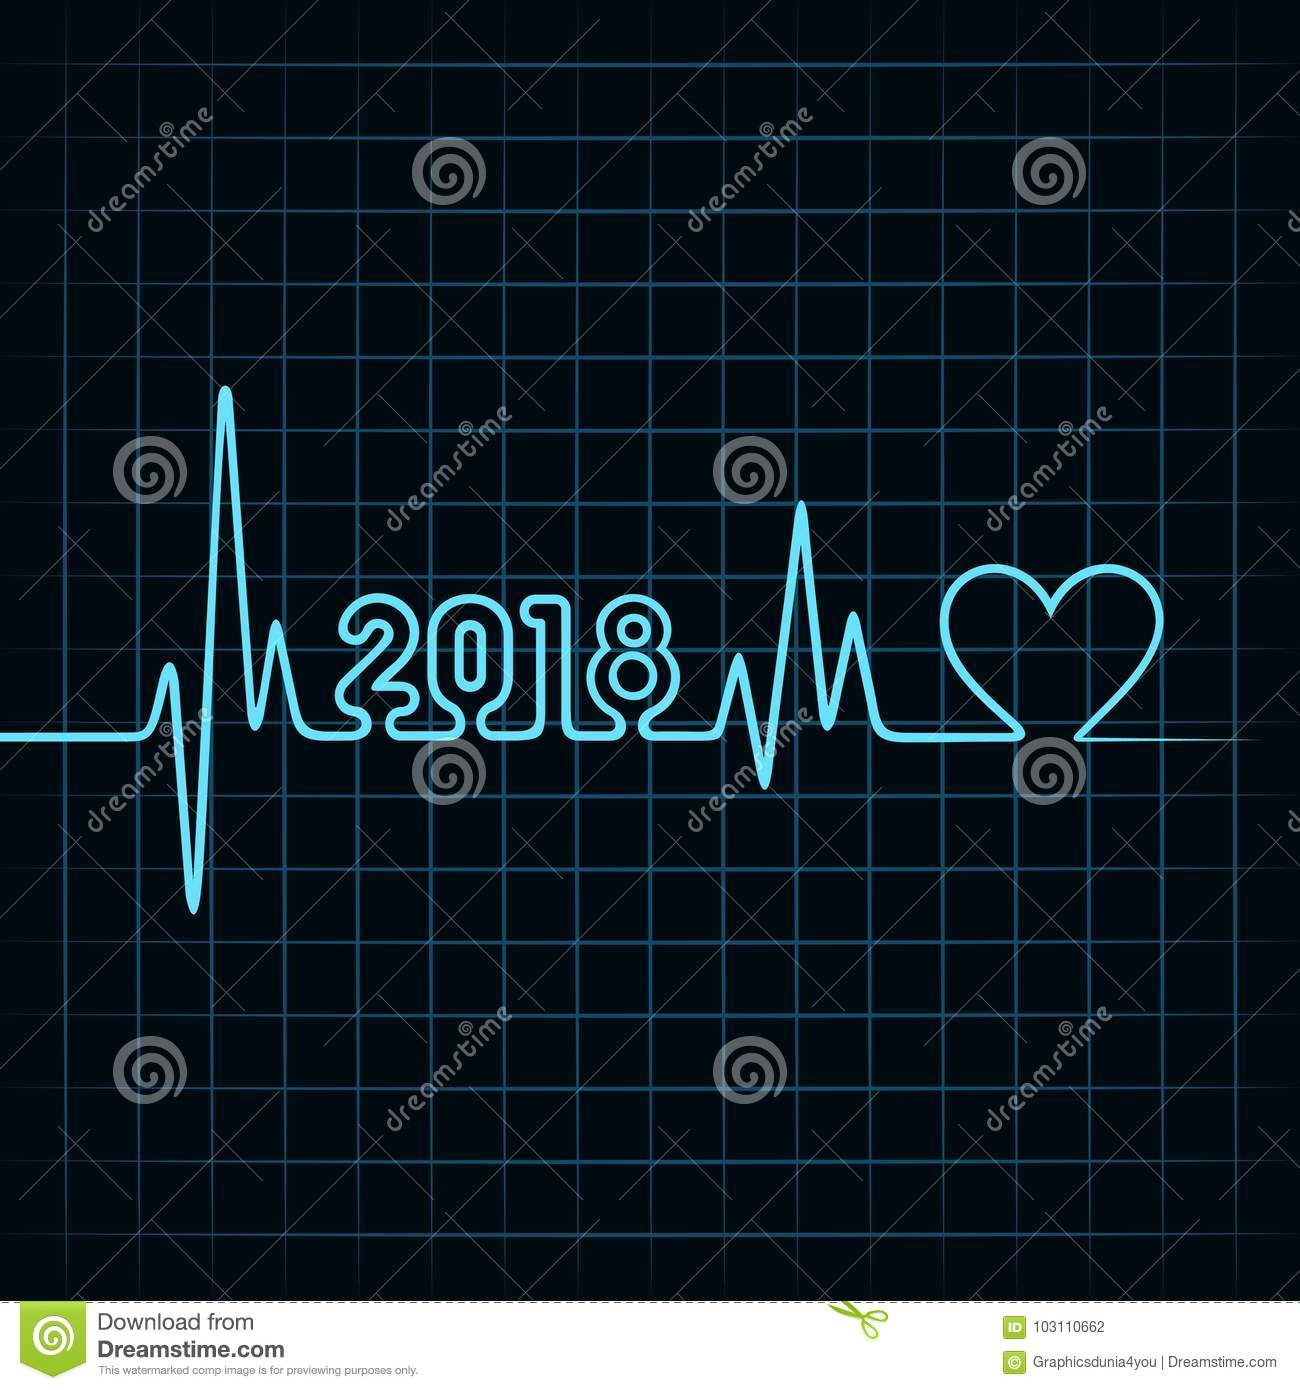 2018 Greeting For New Year Celebration With Heartbeat Design Stock